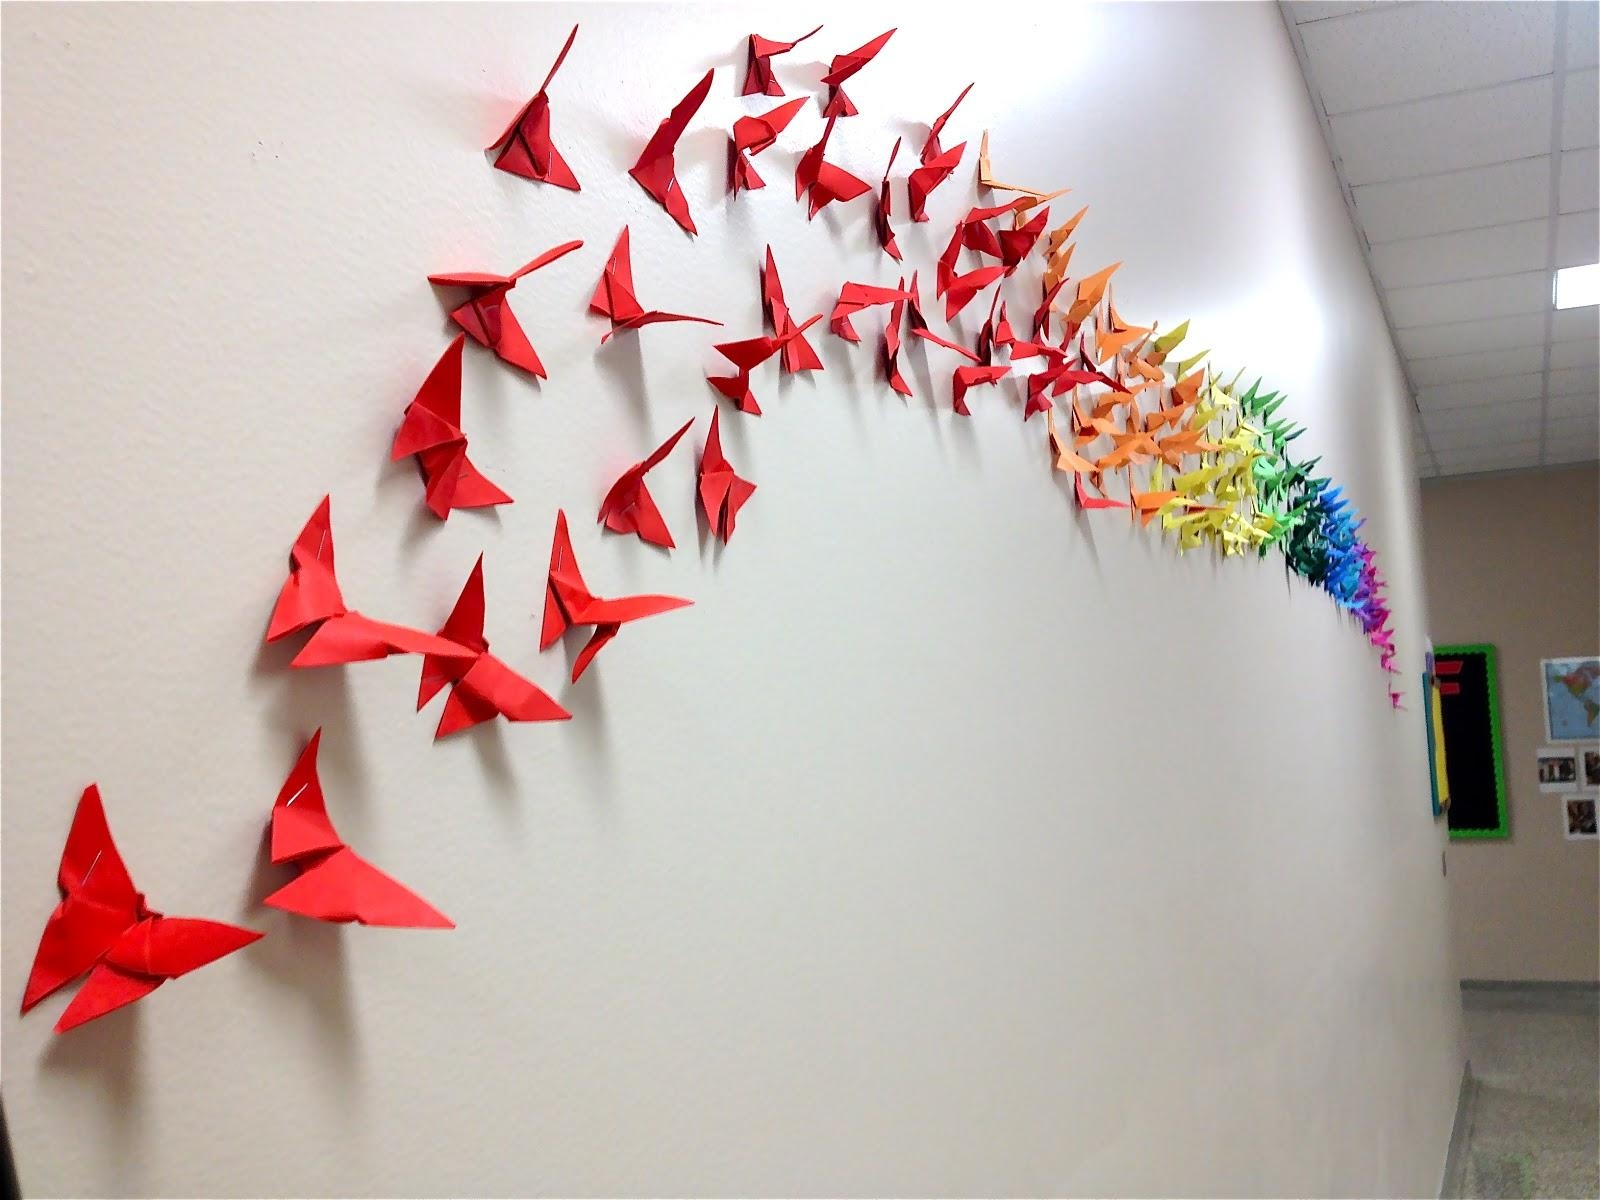 How To Make An Origami Butterfly | Cool2Bkids With Regard To Diy Origami Wall Art (Image 12 of 20)